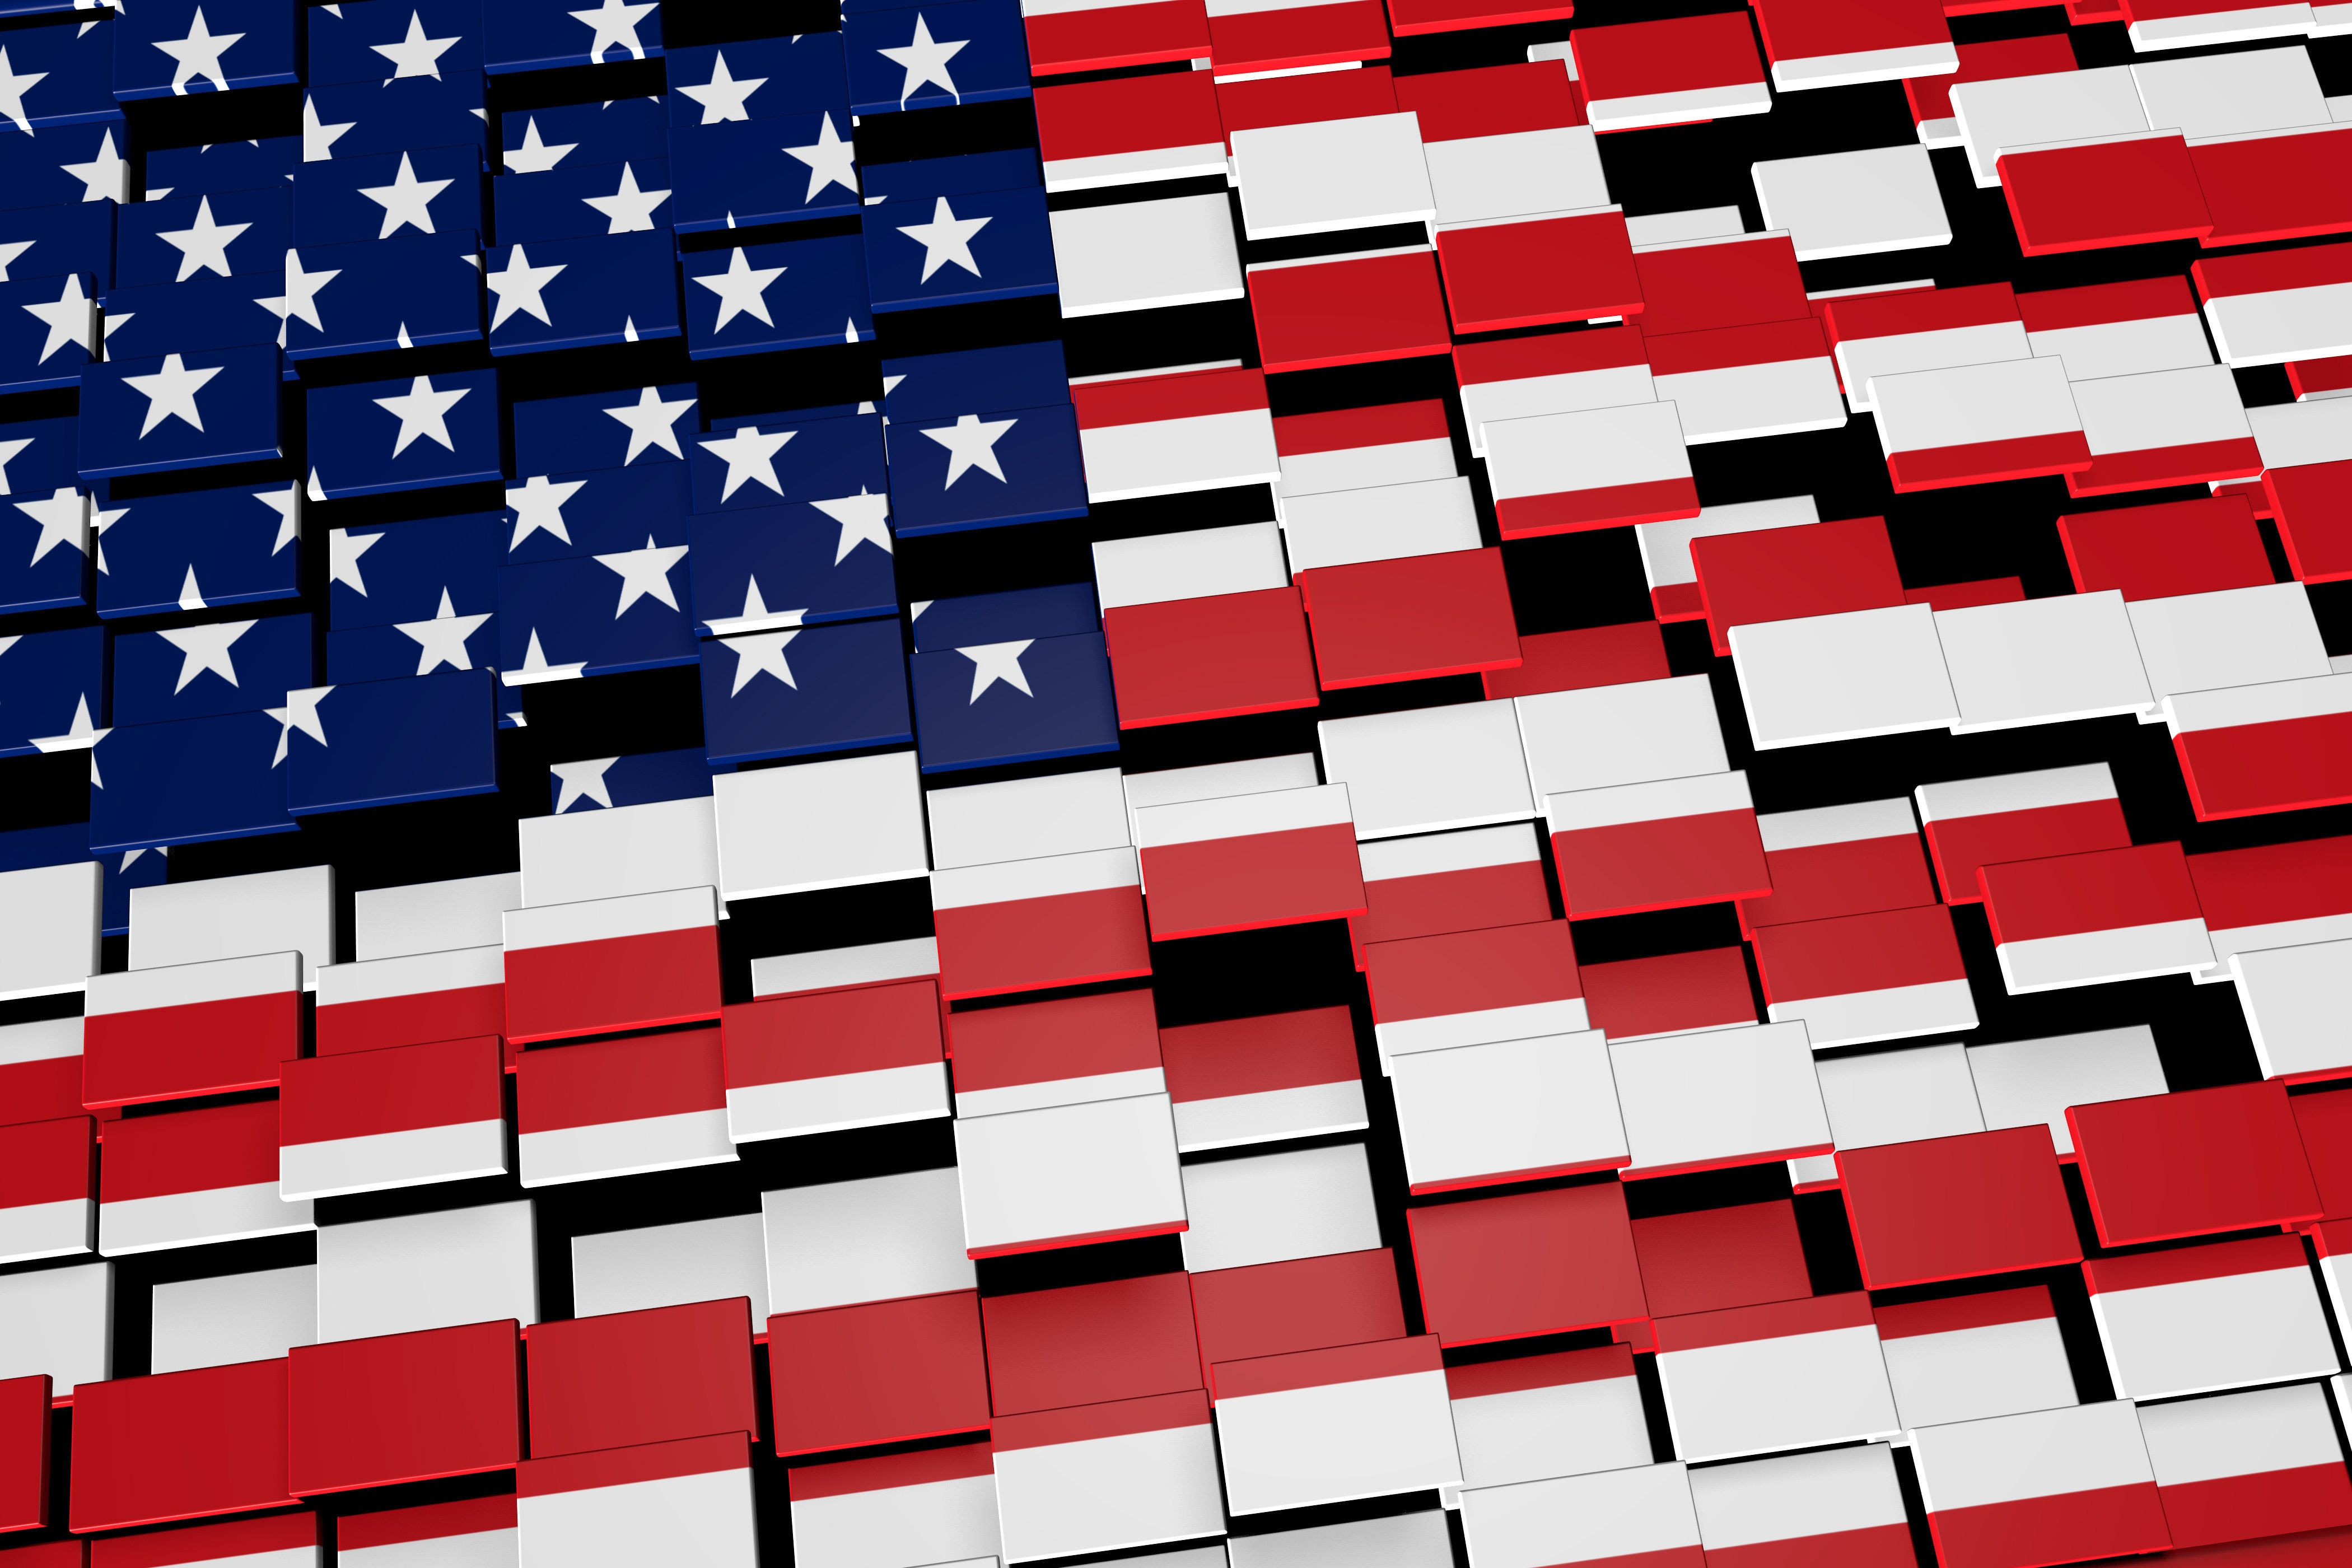 Modern 3D rendered concept of numerous square tiles sliding together to form the national flag of the United States.